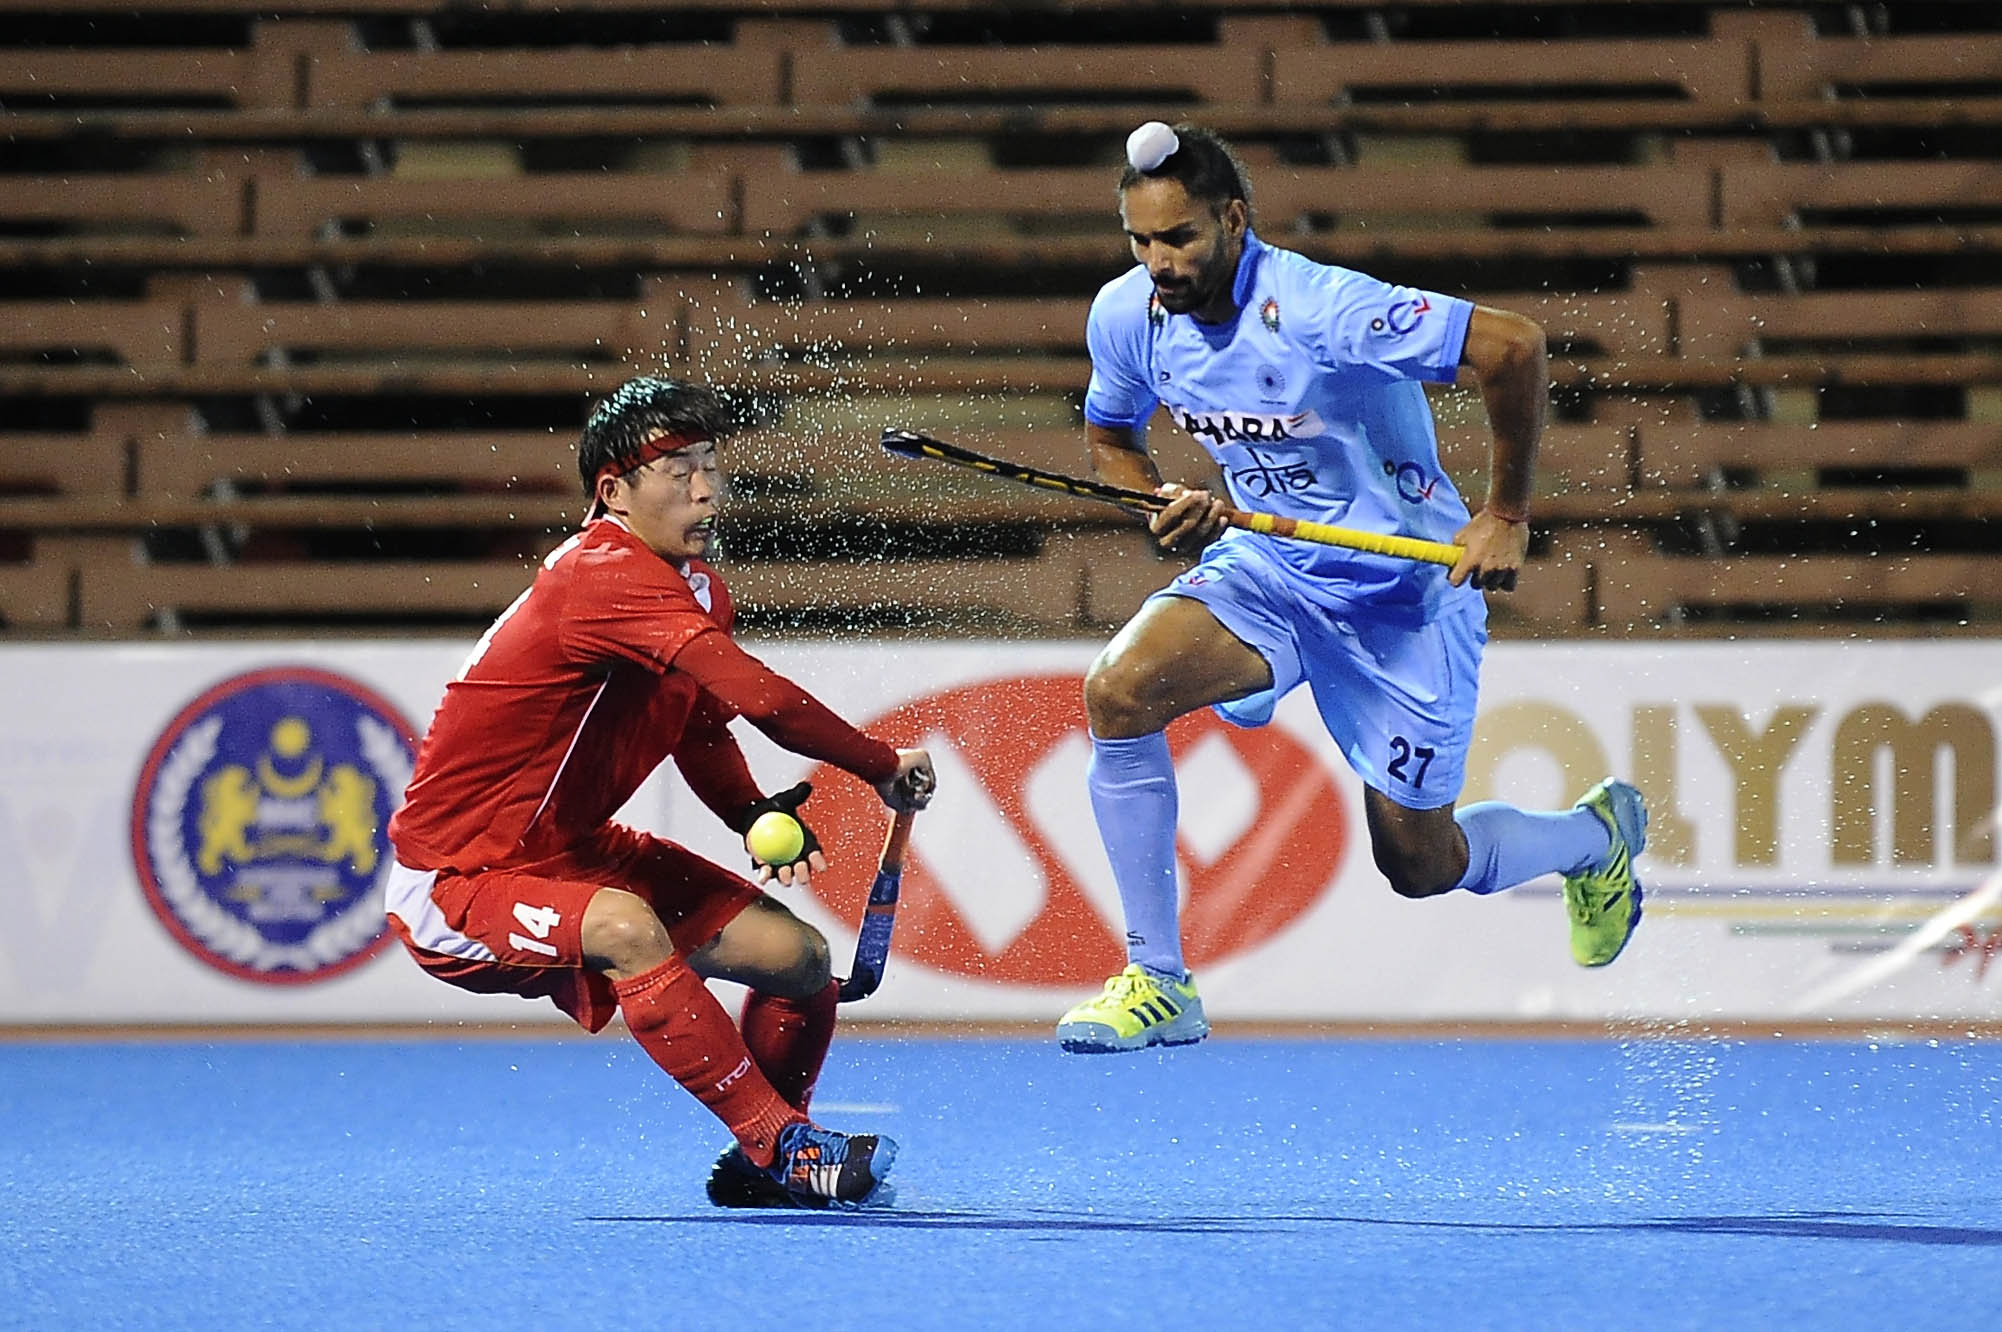 India's Akashdeep Singh (right) chips the ball past China's captain, Lei Meng just before registering India's first goal of the night in their QNET Asian Champions Trophy 2016 match at the Wisma Belia Hockey Stadium, Kuantan today. India won 9-0.